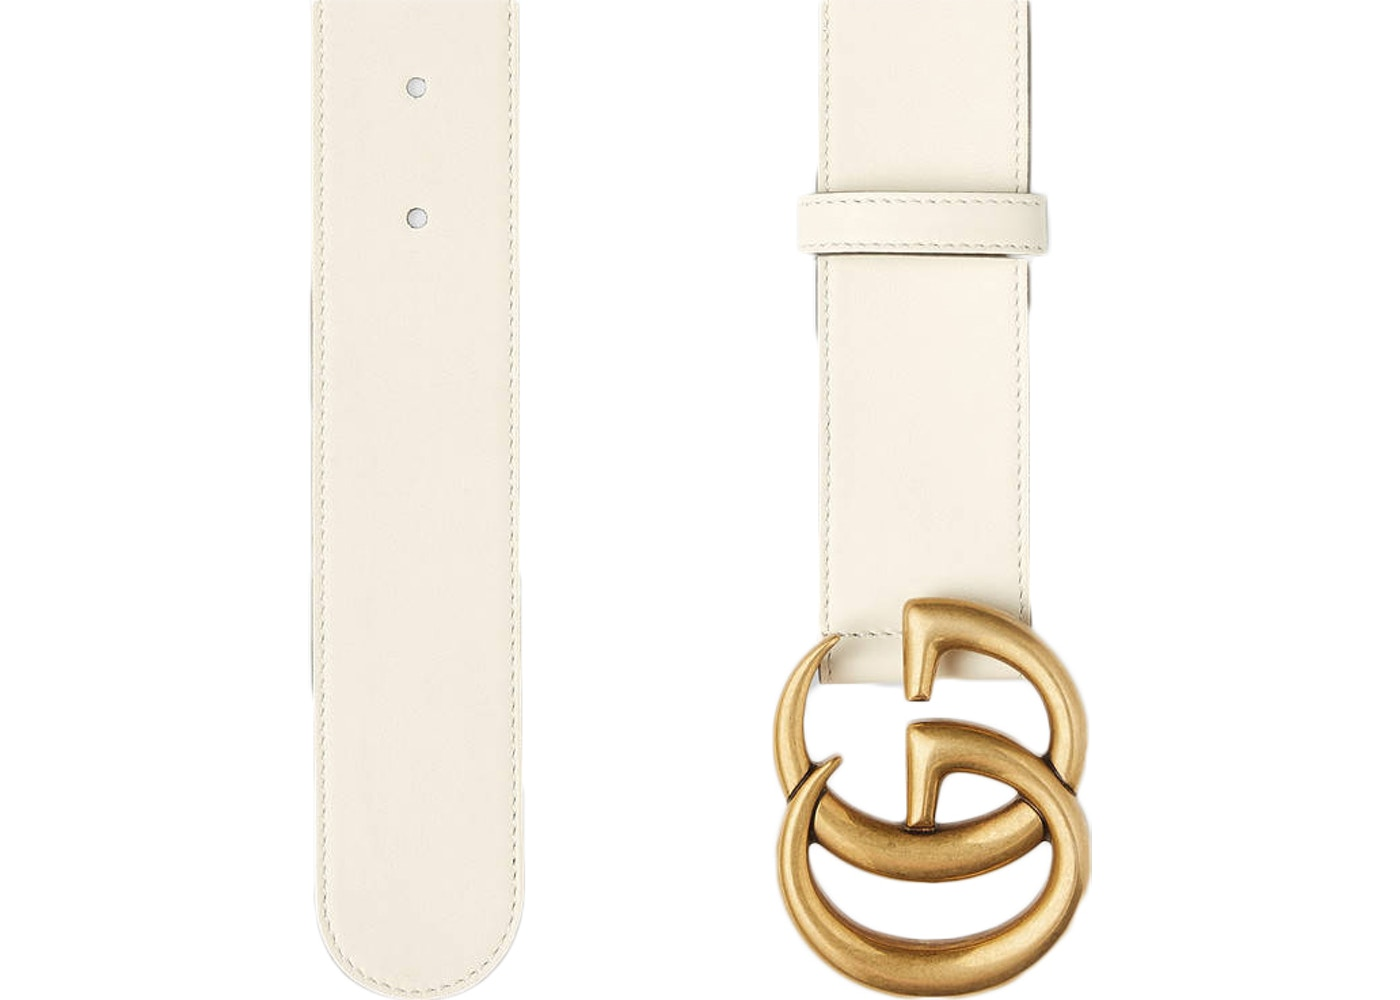 e2f9e76d3 Gucci Double G Gold Buckle Leather Belt 1.5 Width White